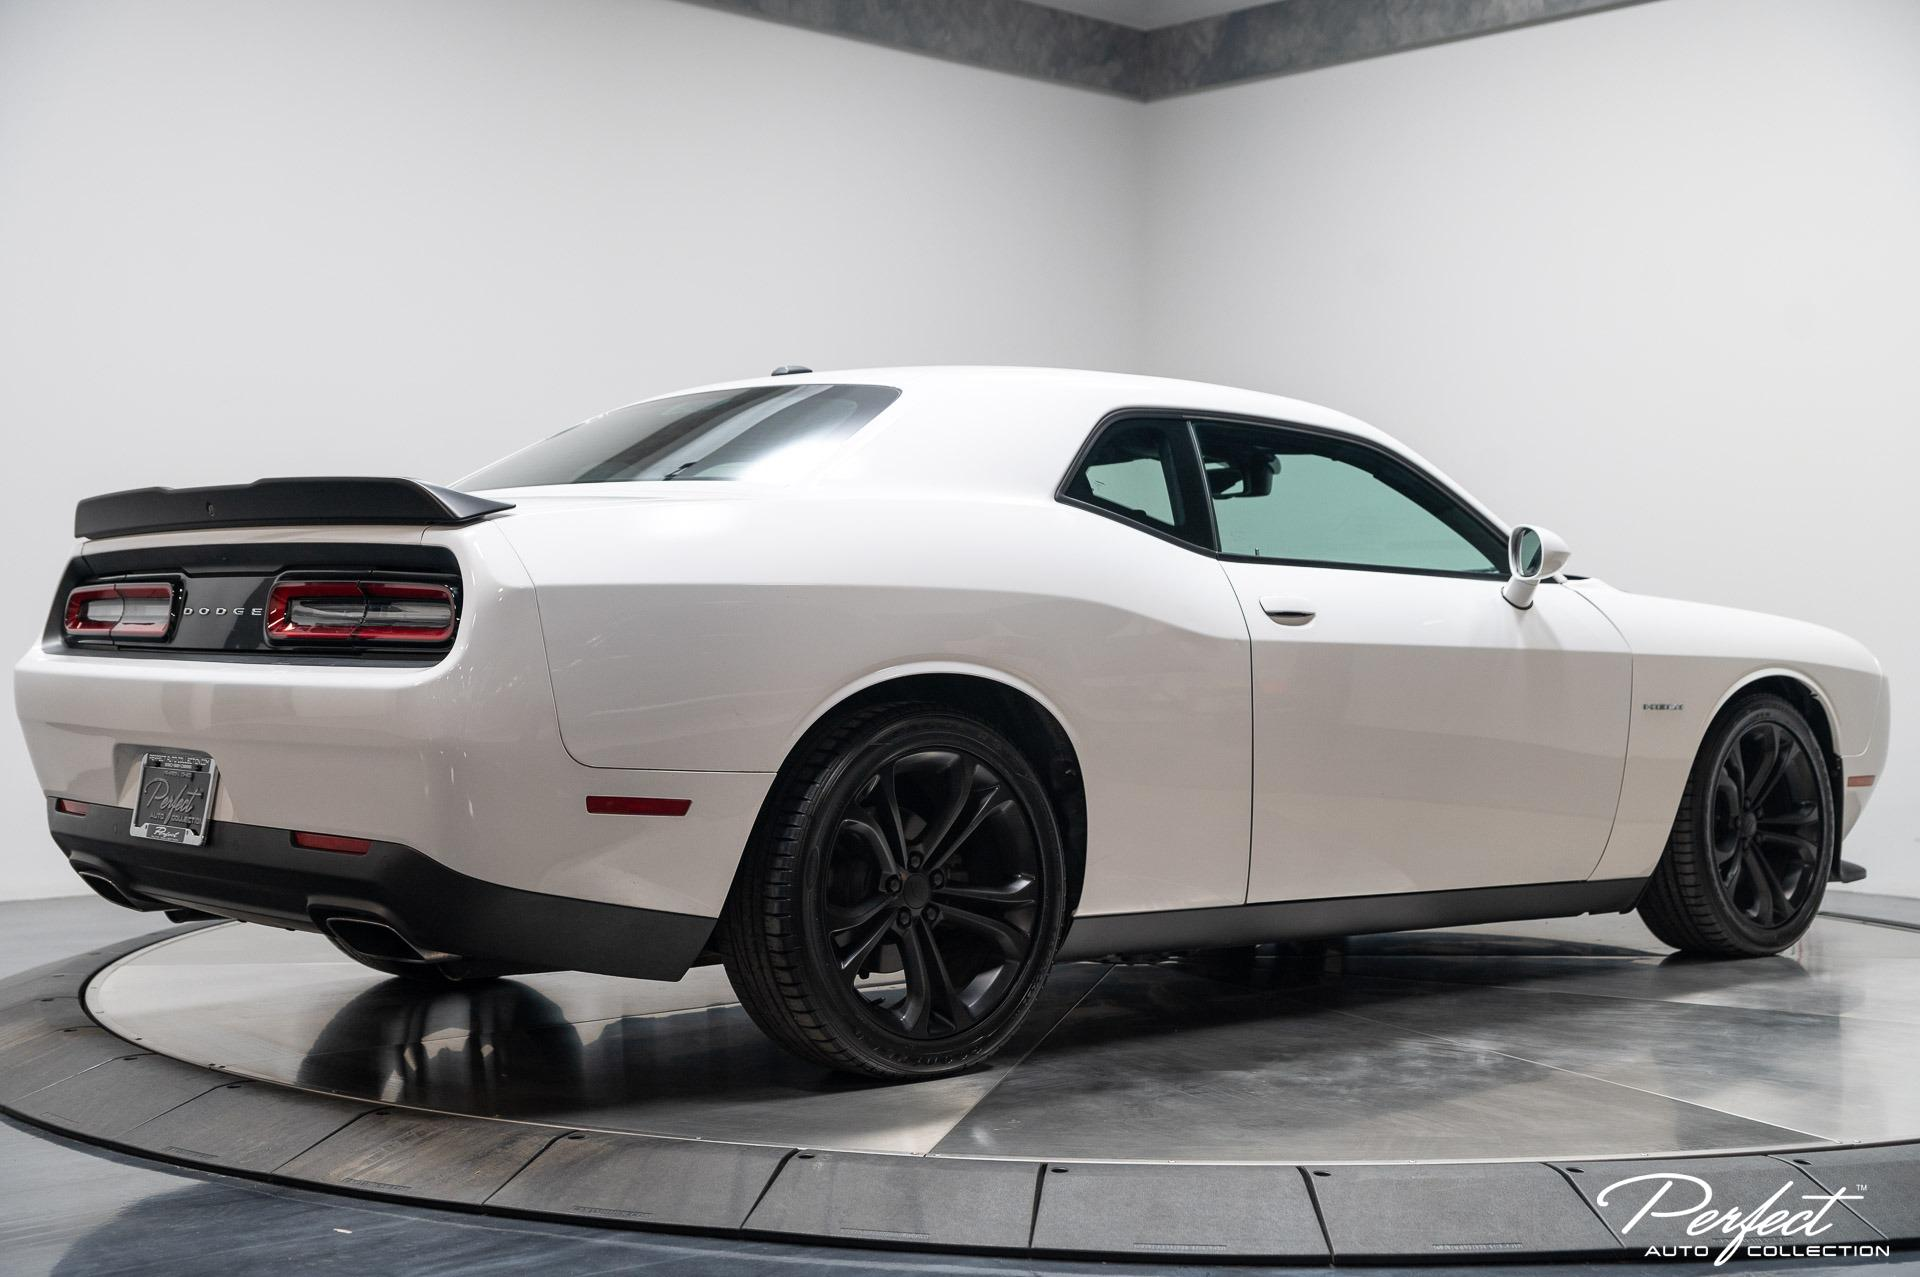 Used 2020 Dodge Challenger R/T for sale $29,993 at Perfect Auto Collection in Akron OH 44310 4